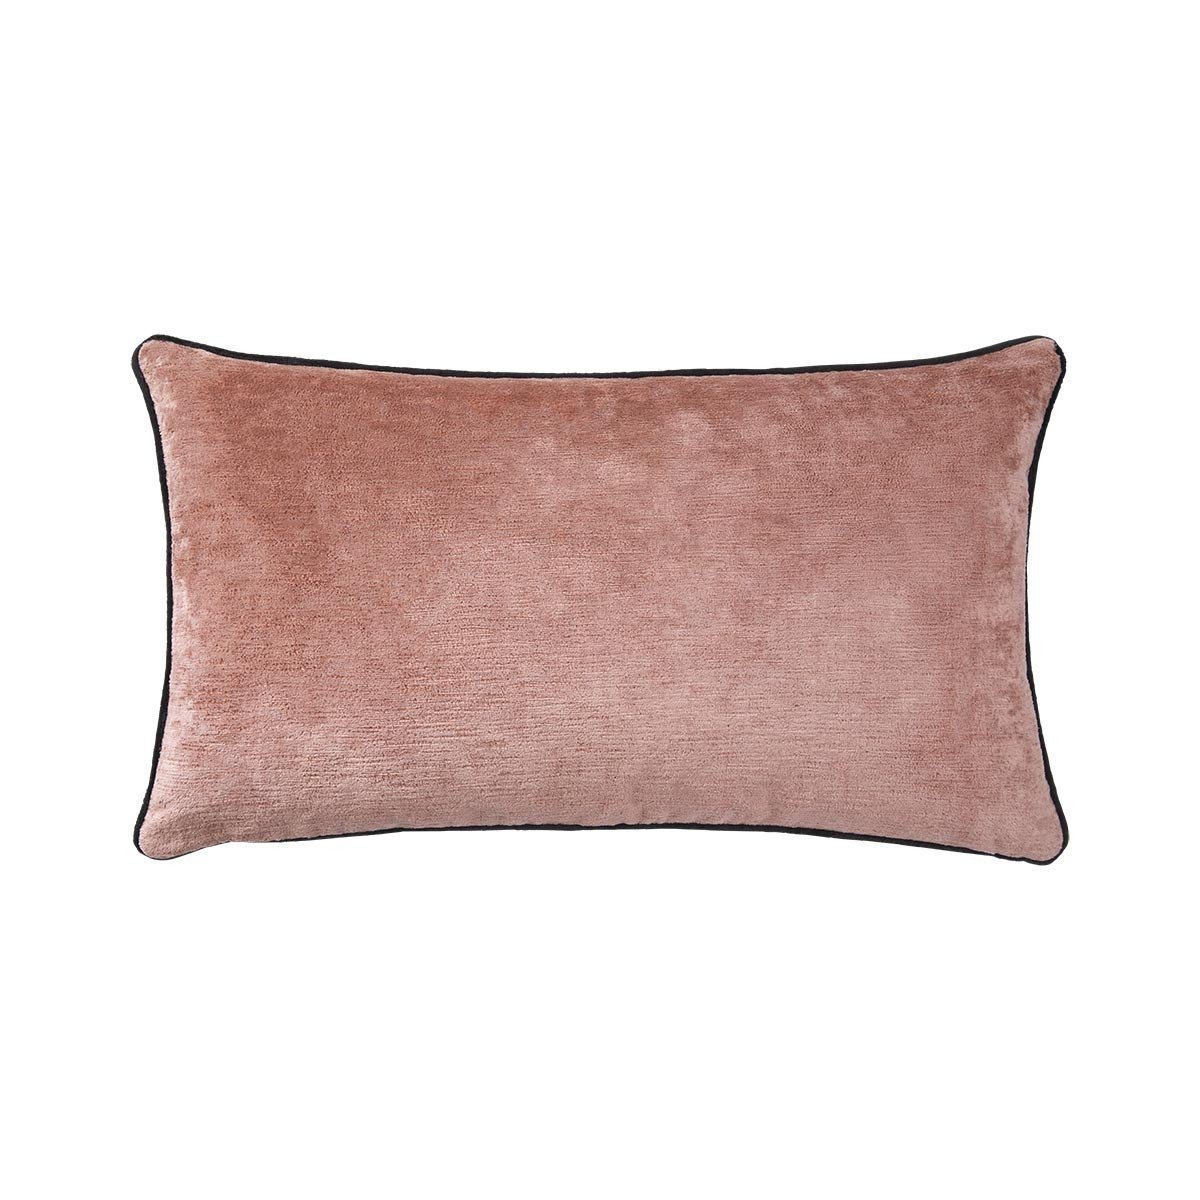 Boromee Cedre Lumbar Pillow by Iosis